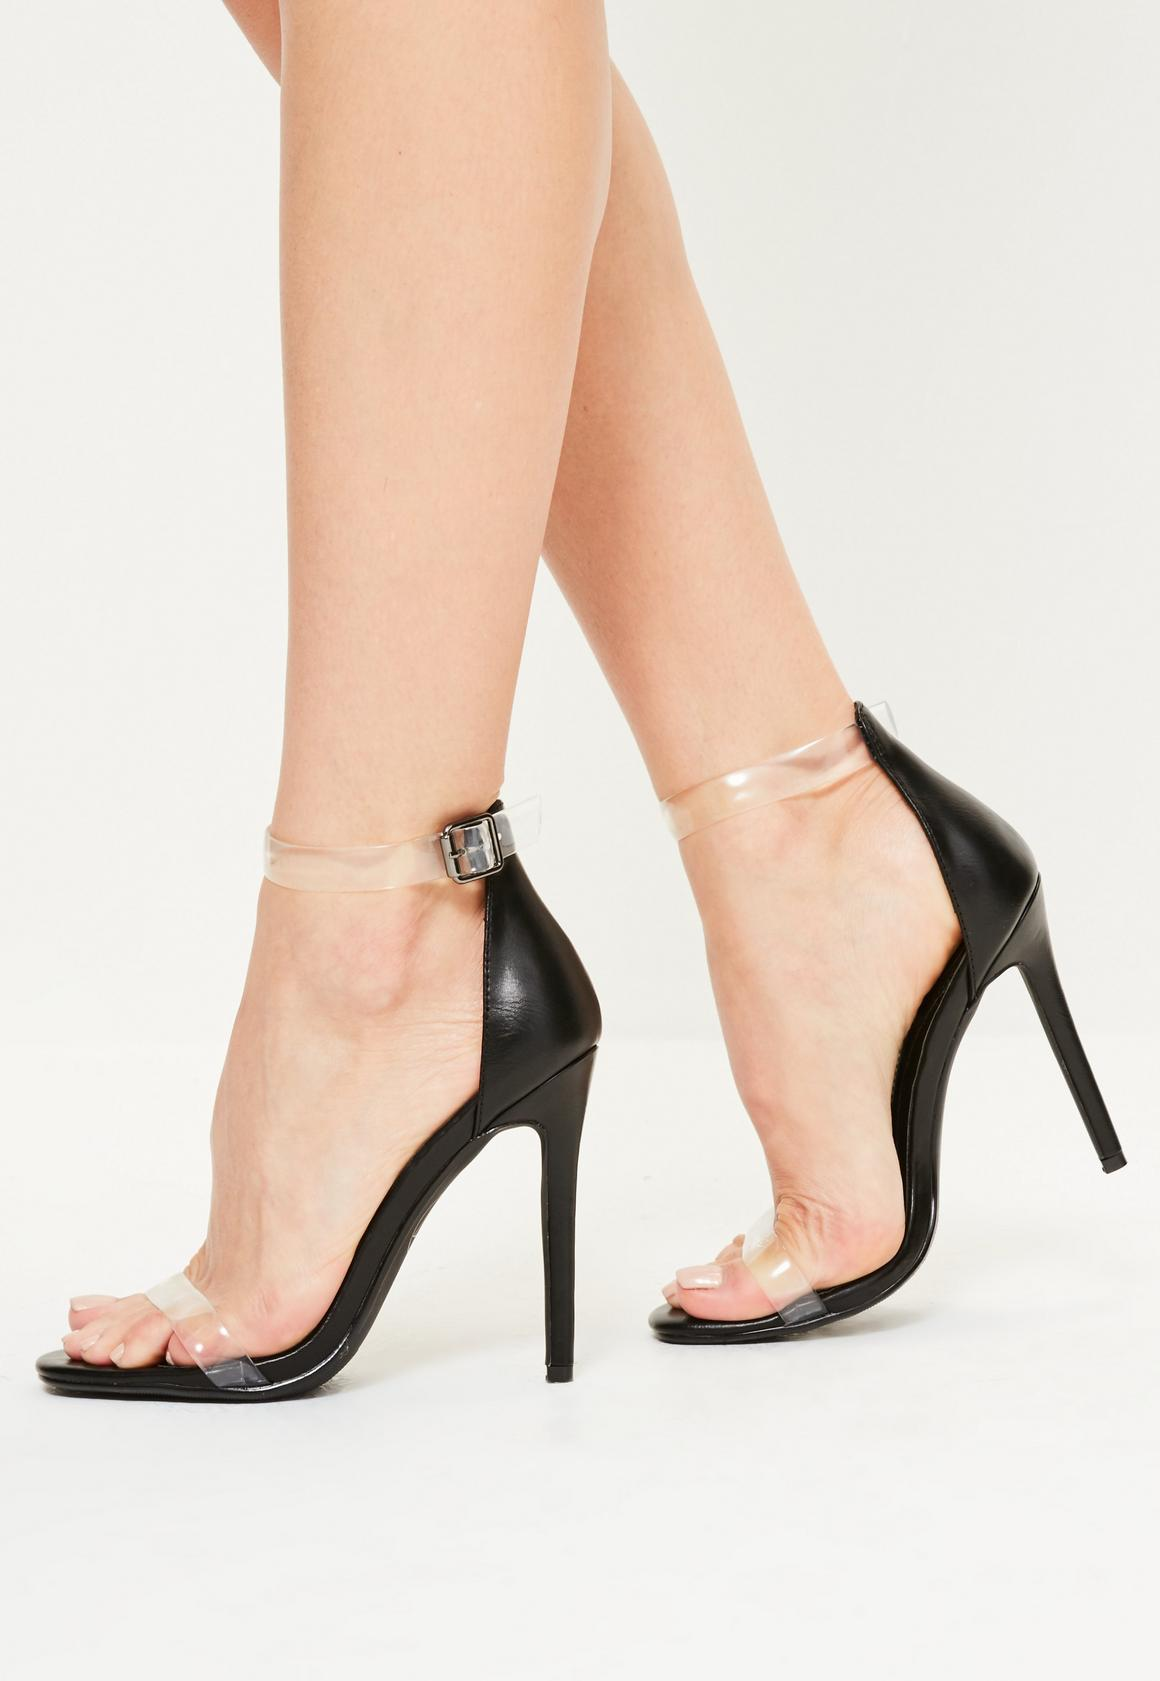 Black sandals ireland -  Black Clear Rounded Strap Barely There Heels